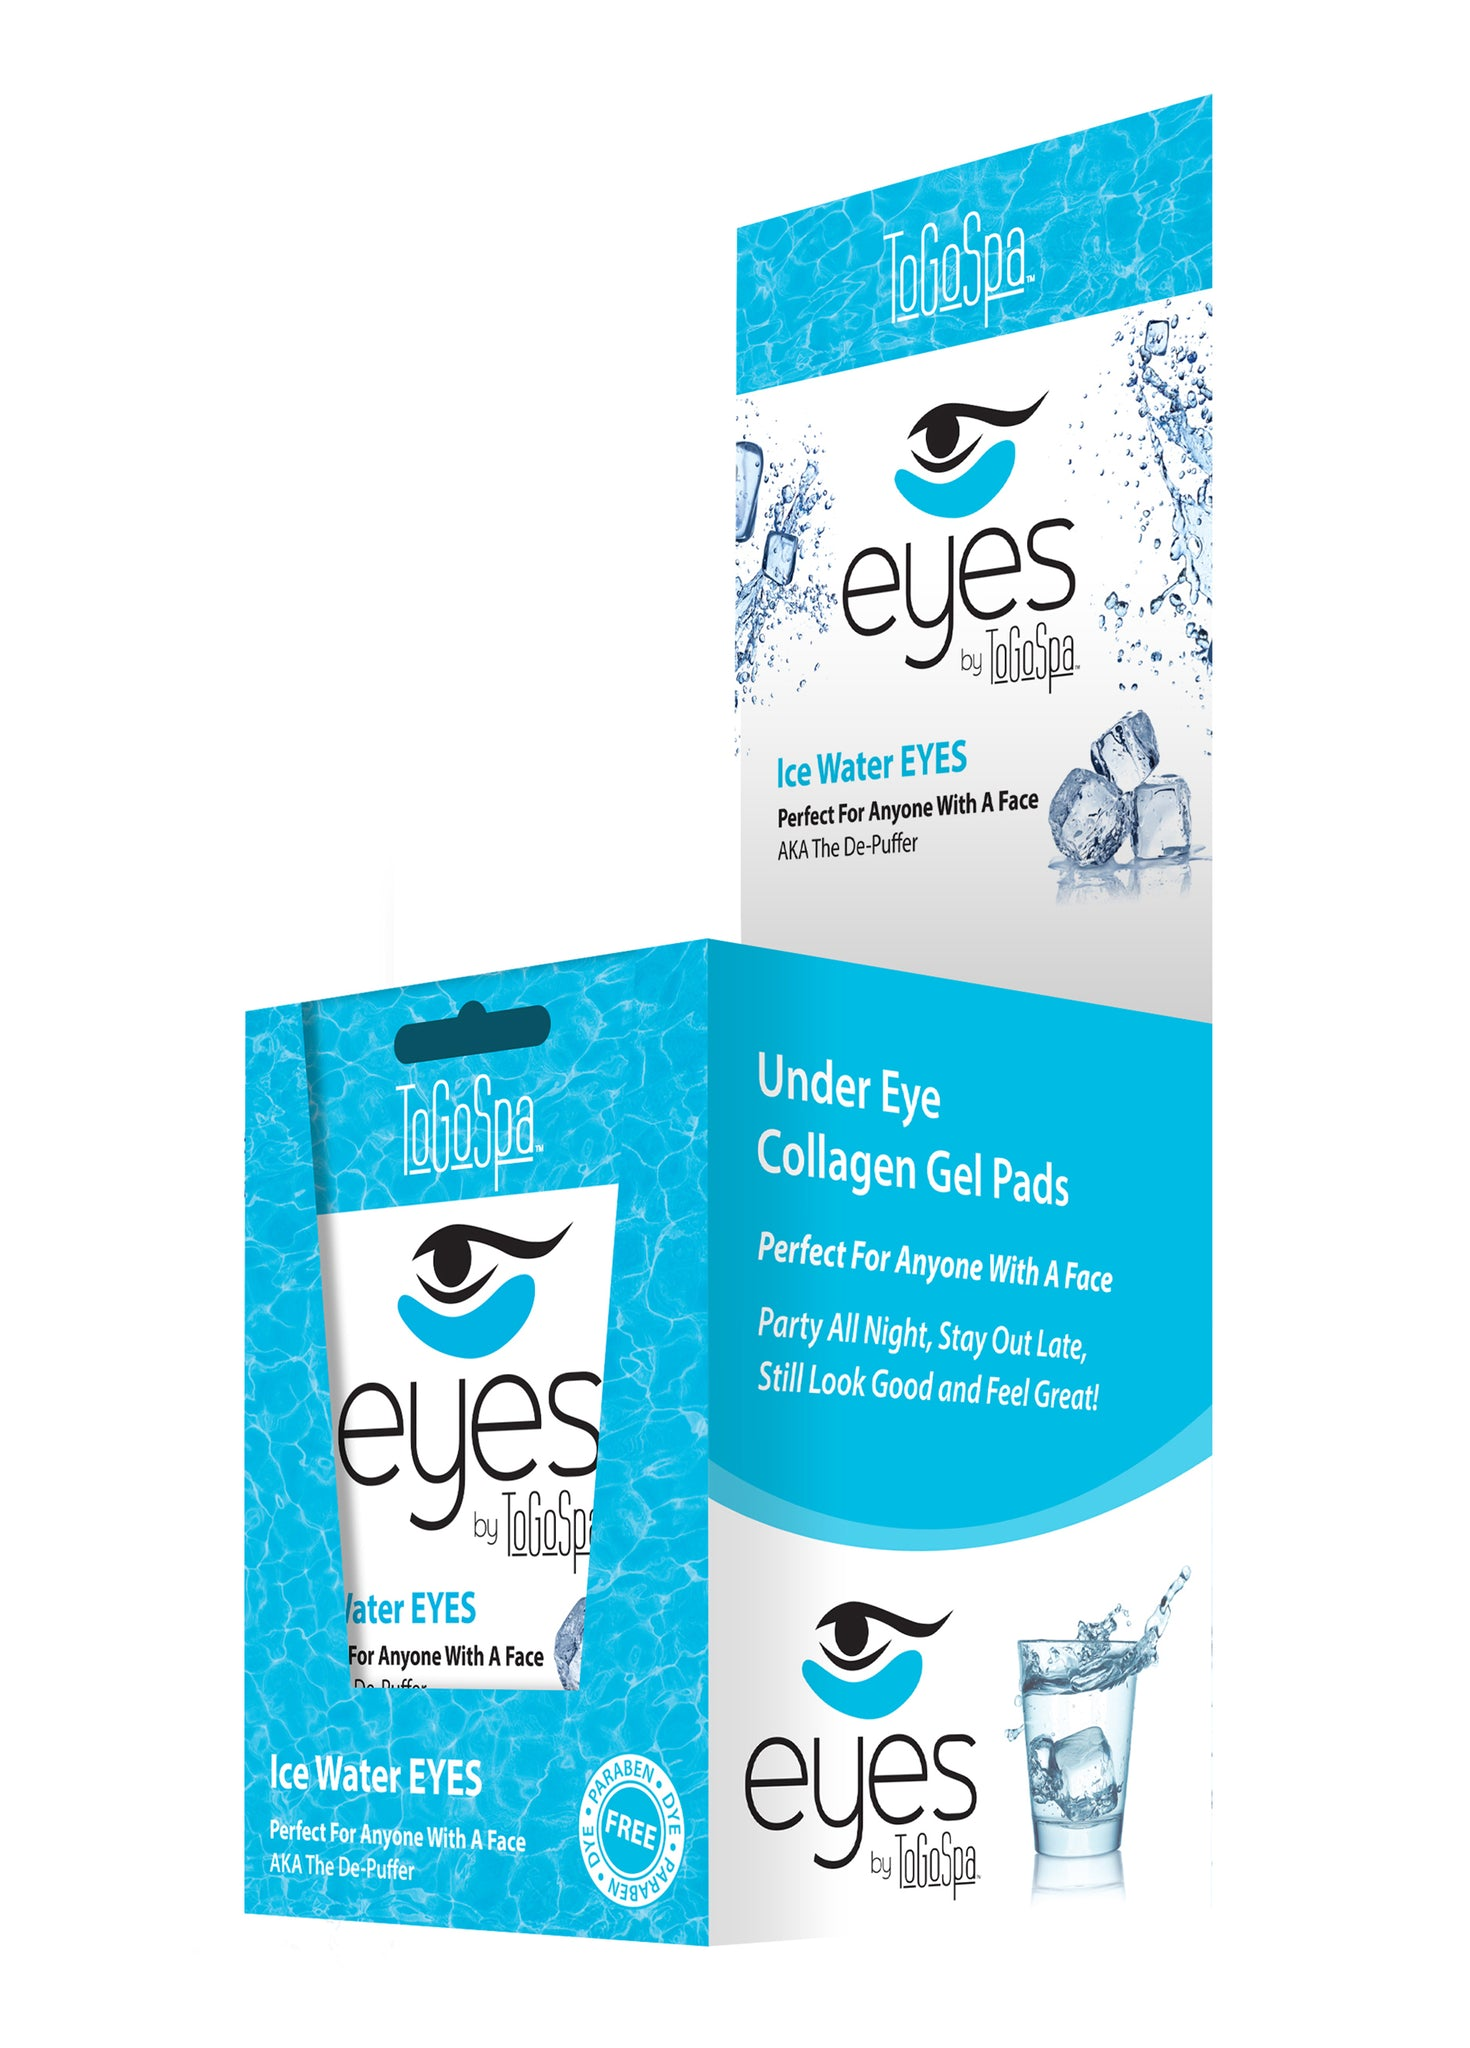 Wholesale Ice Water EYES Retail Box - 10 Packs